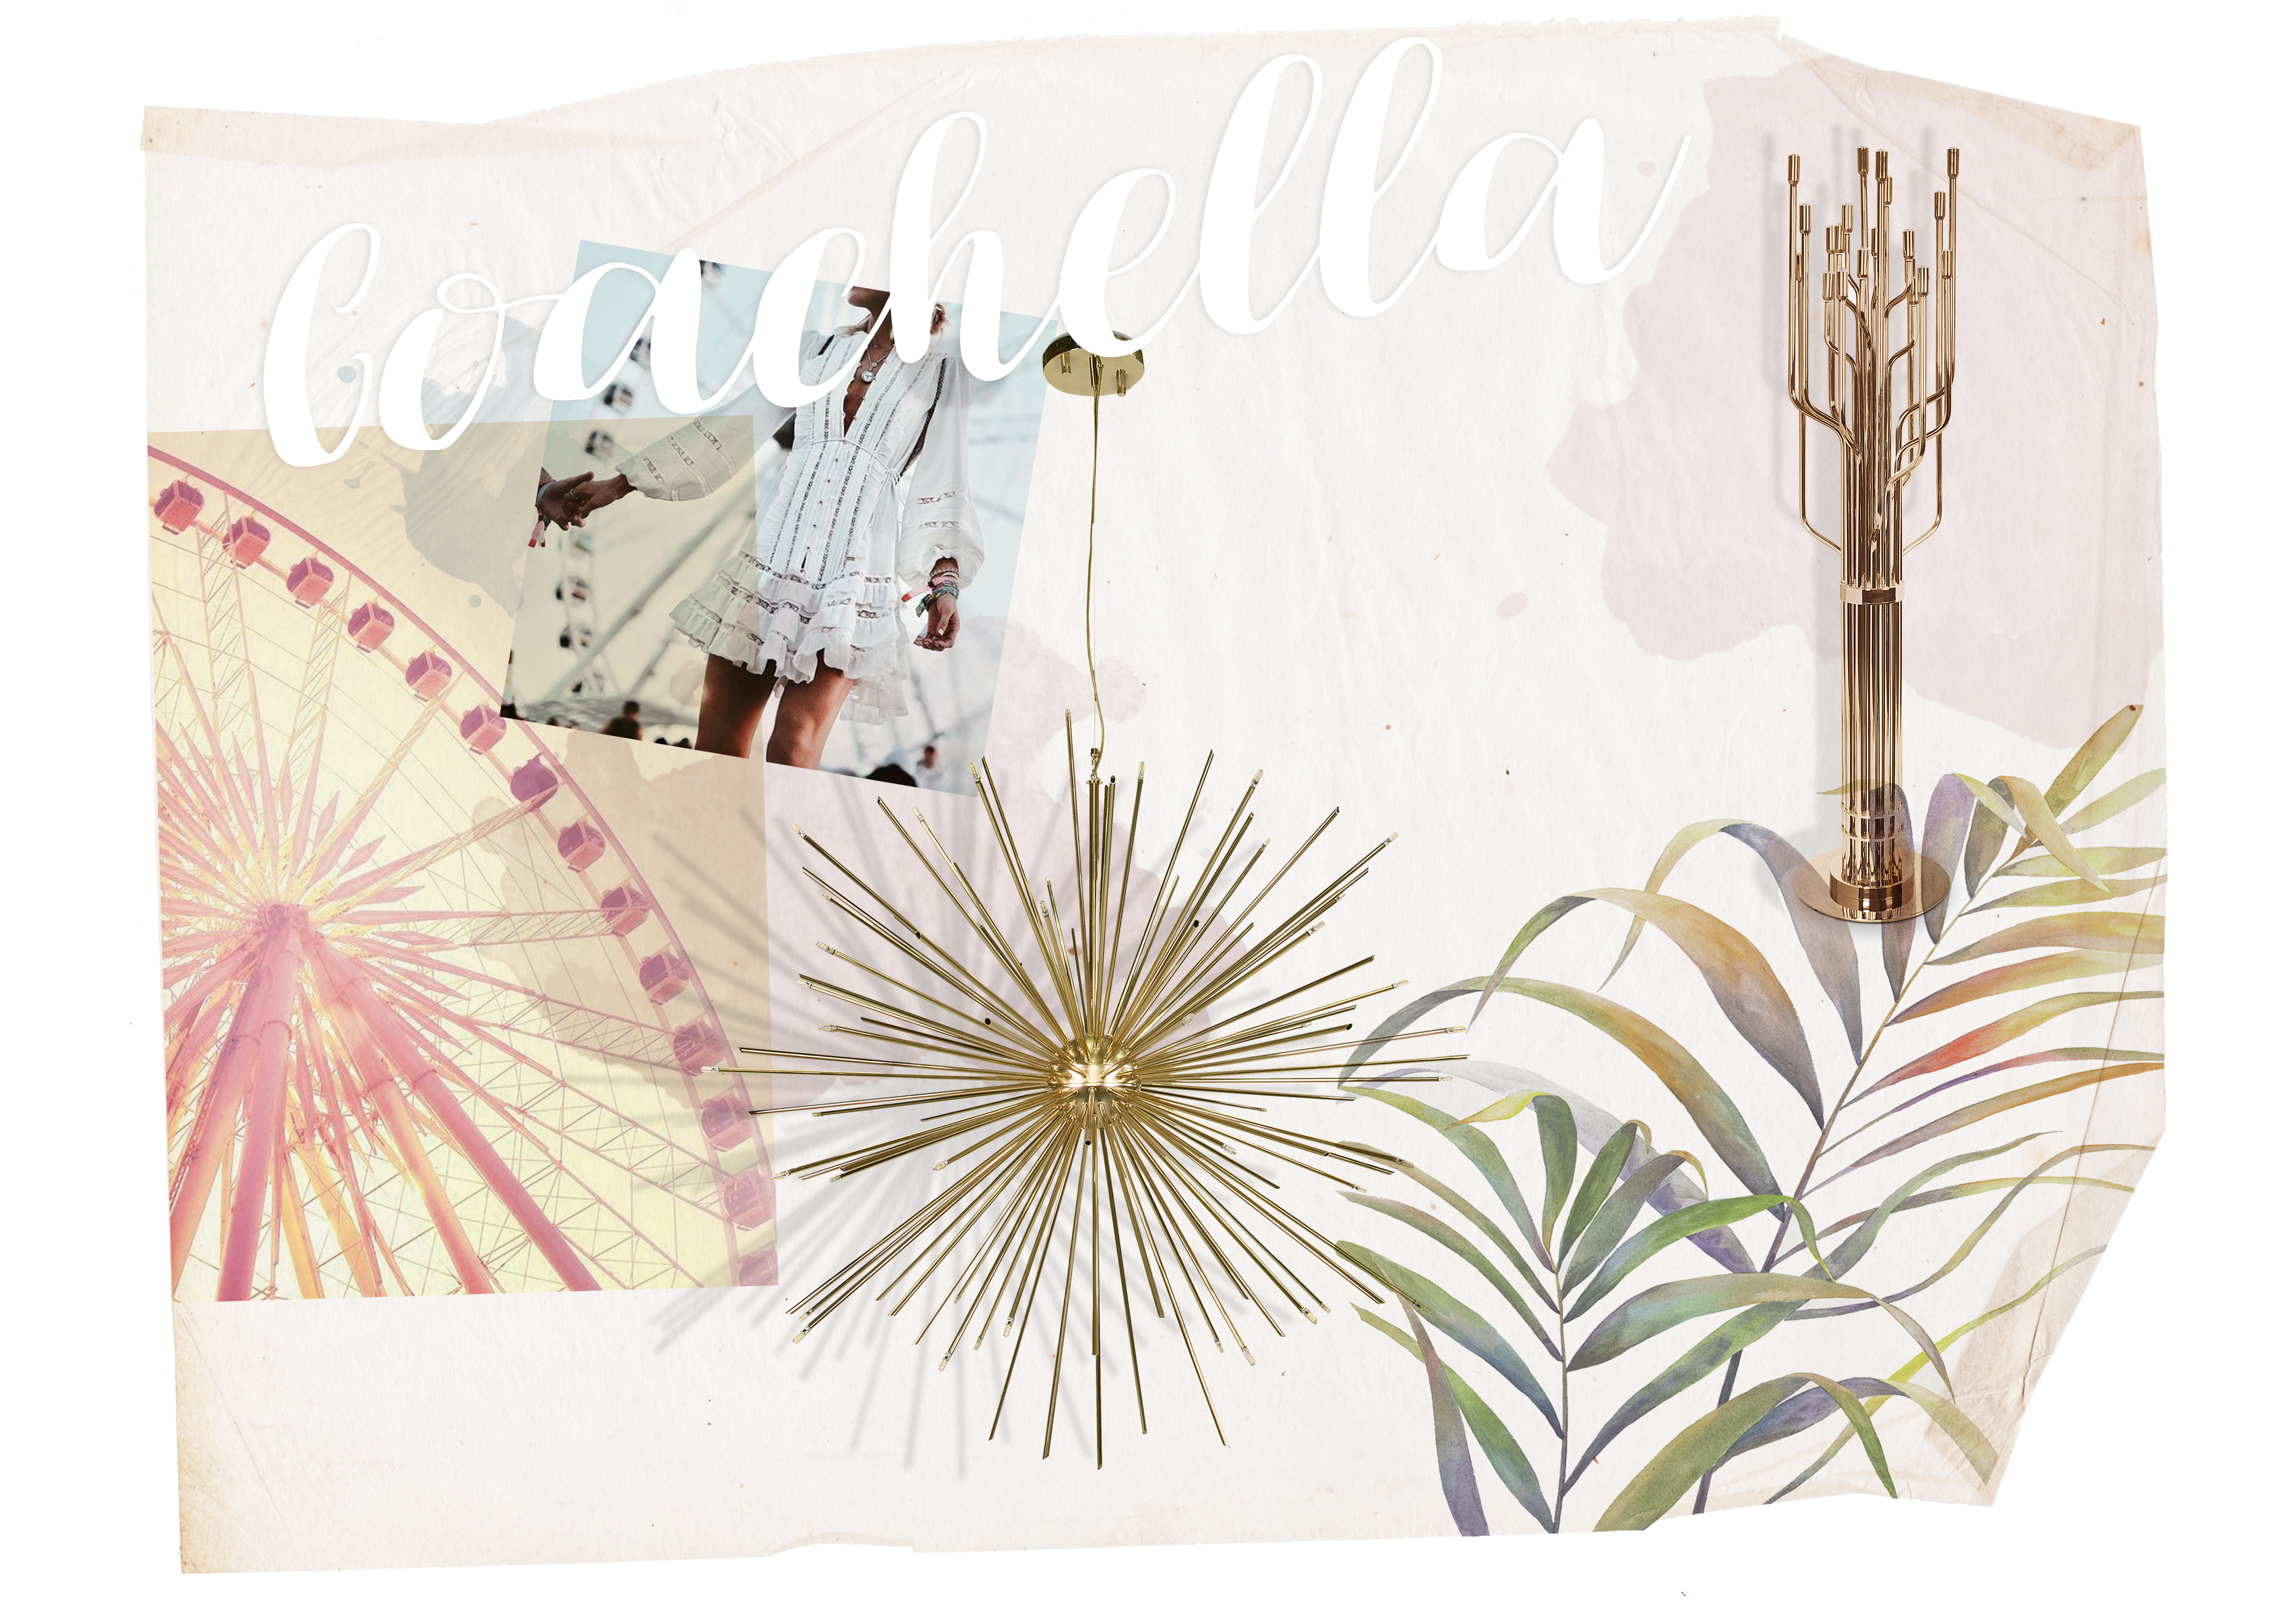 DelightFULL Went All-In With The Summer Moodboards This Year 3 summer moodboards DelightFULL Went All-In With The Summer Moodboards This Year! DelightFULL Went All In With The Summer Moodboards This Year 3